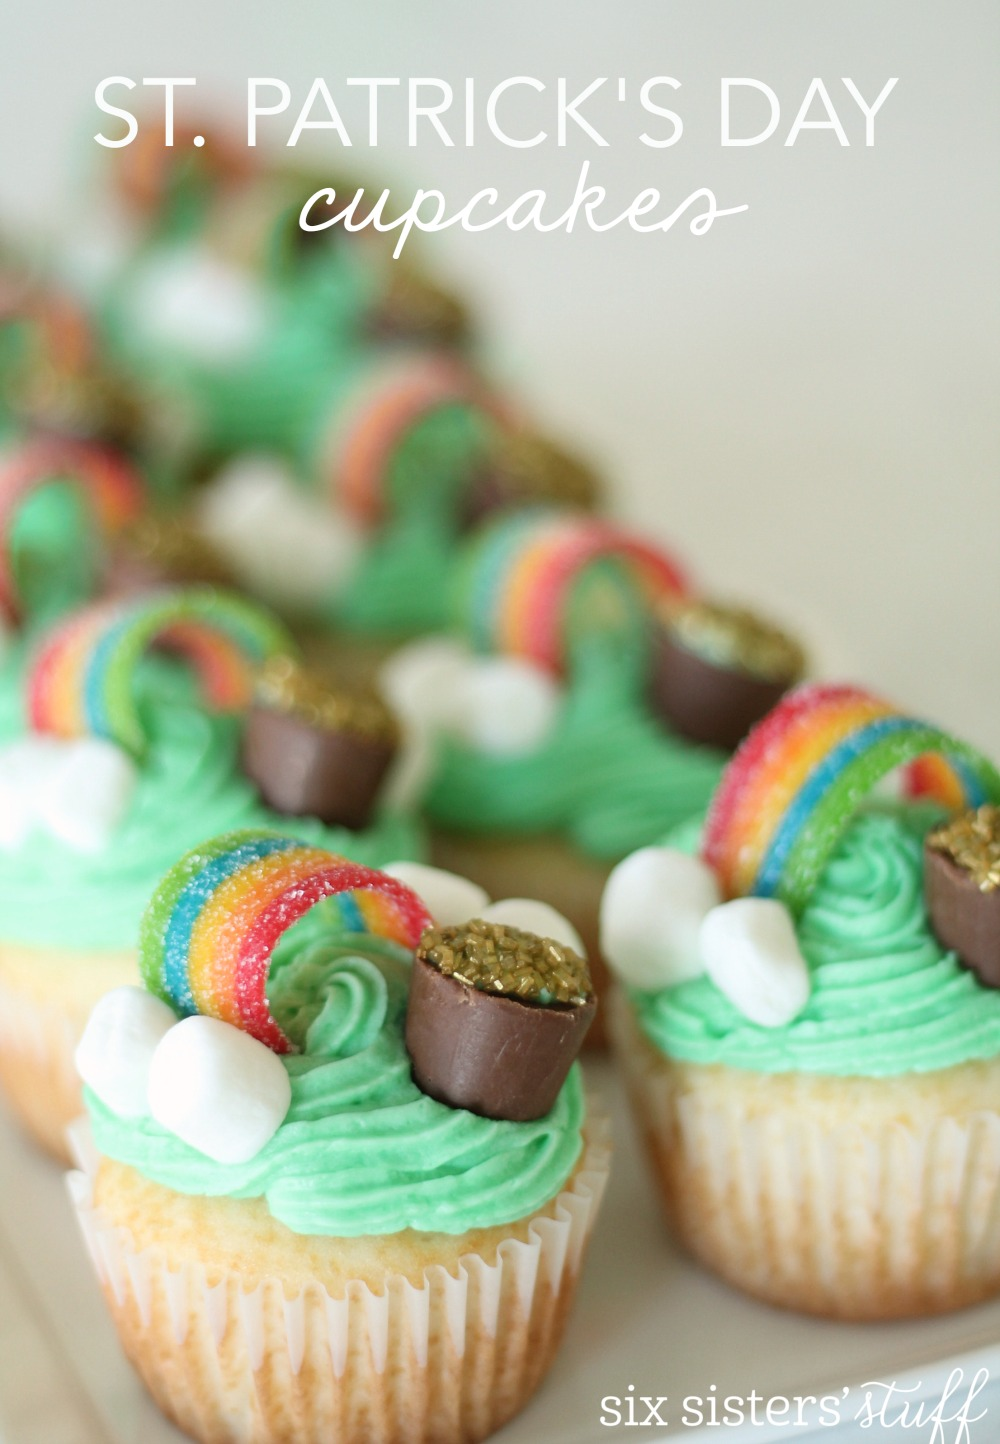 St. Patrick's Day Rainbow Cupcakes from SixSistersStuff.com